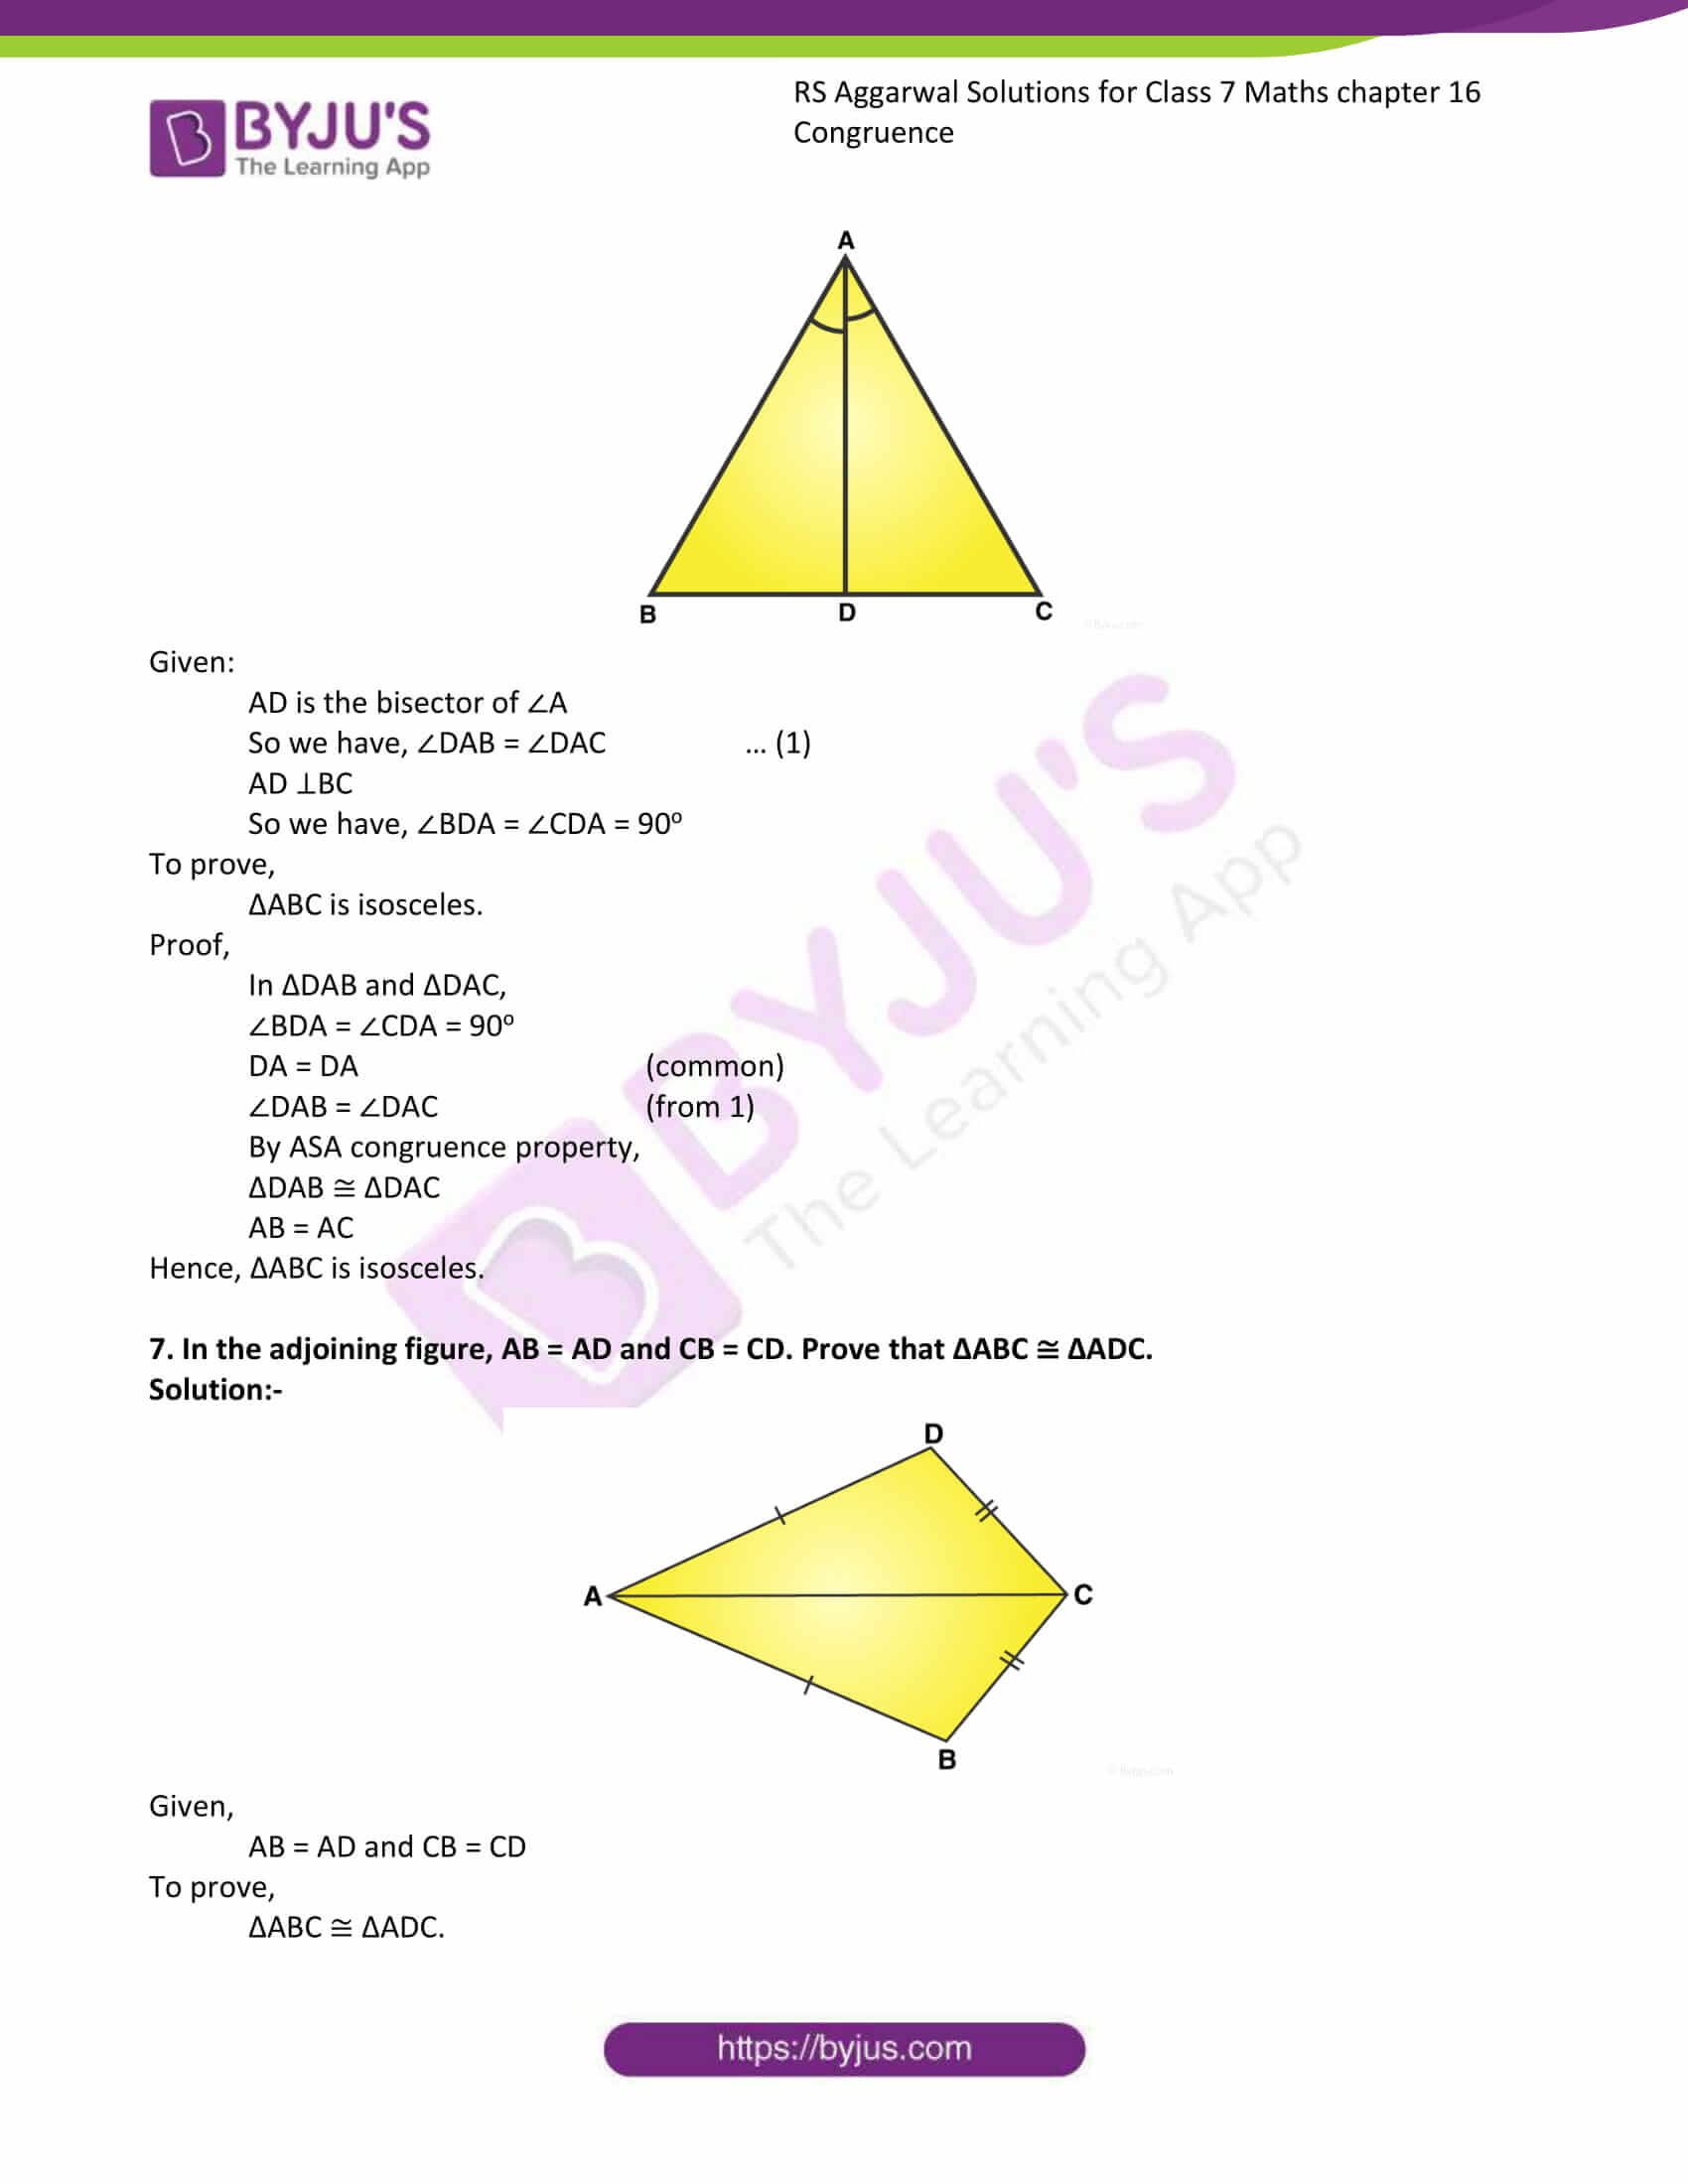 RS Aggarwal Solutions Class 7 Maths Chapter 16 Congruence 6